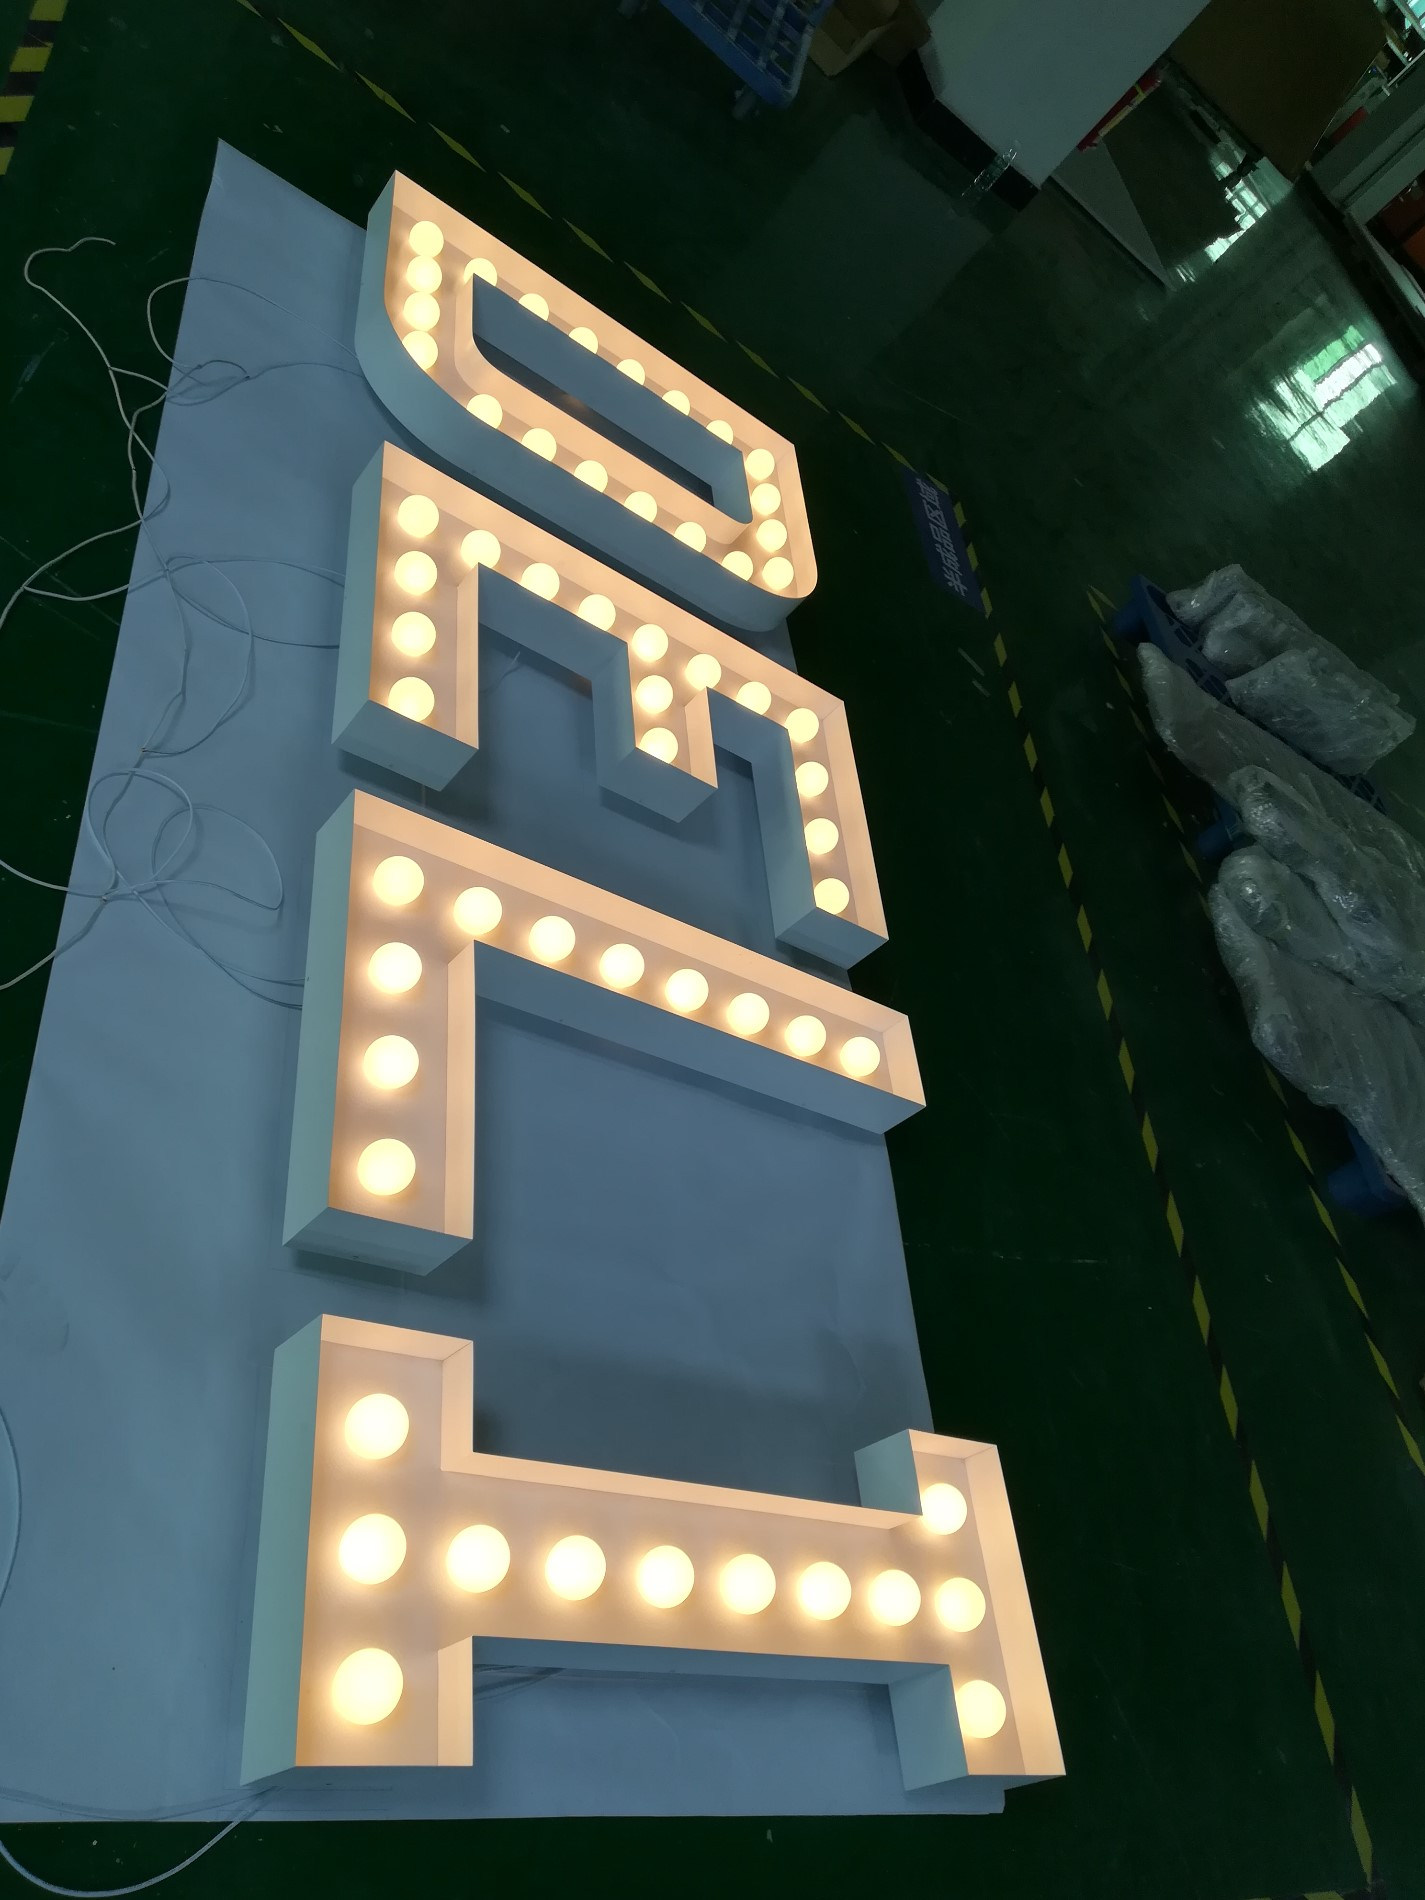 Open Face Bulb Sign Led Channel Letter Marquee Letters Manufacturers, Open Face Bulb Sign Led Channel Letter Marquee Letters Factory, Supply Open Face Bulb Sign Led Channel Letter Marquee Letters